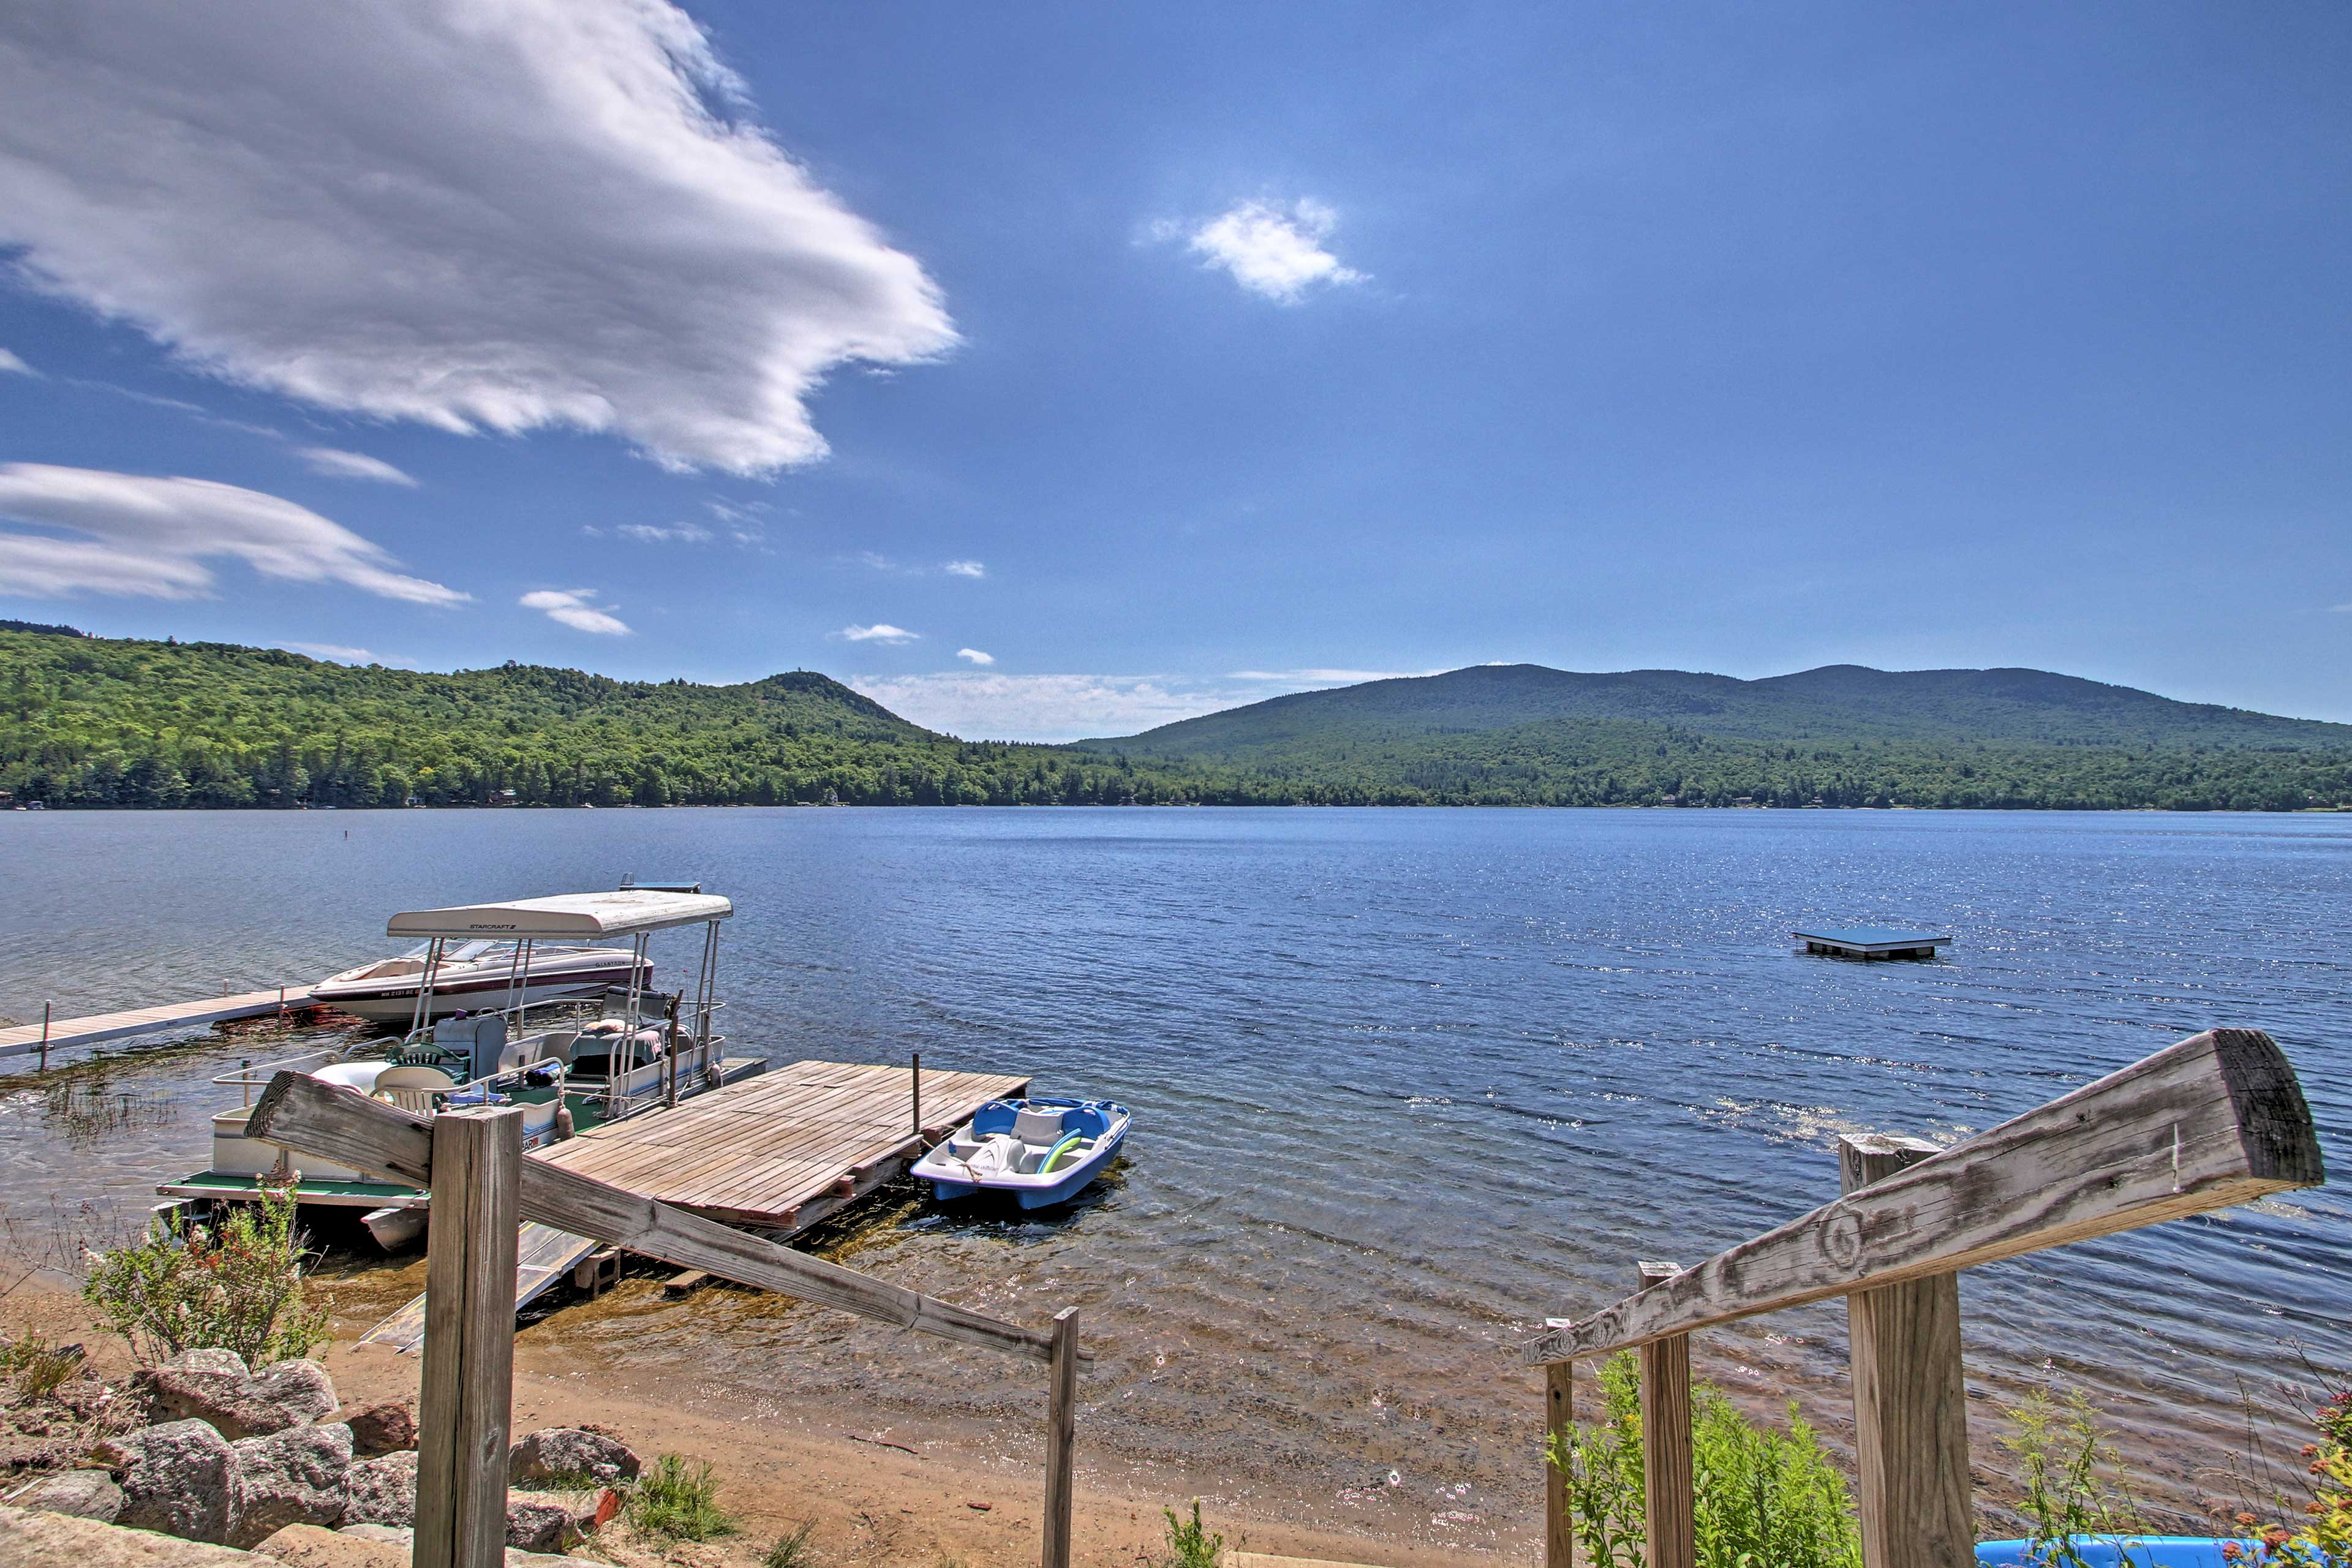 Retreat to this 2-bed, 2-bath vacation rental cottage on Lake Stinson!